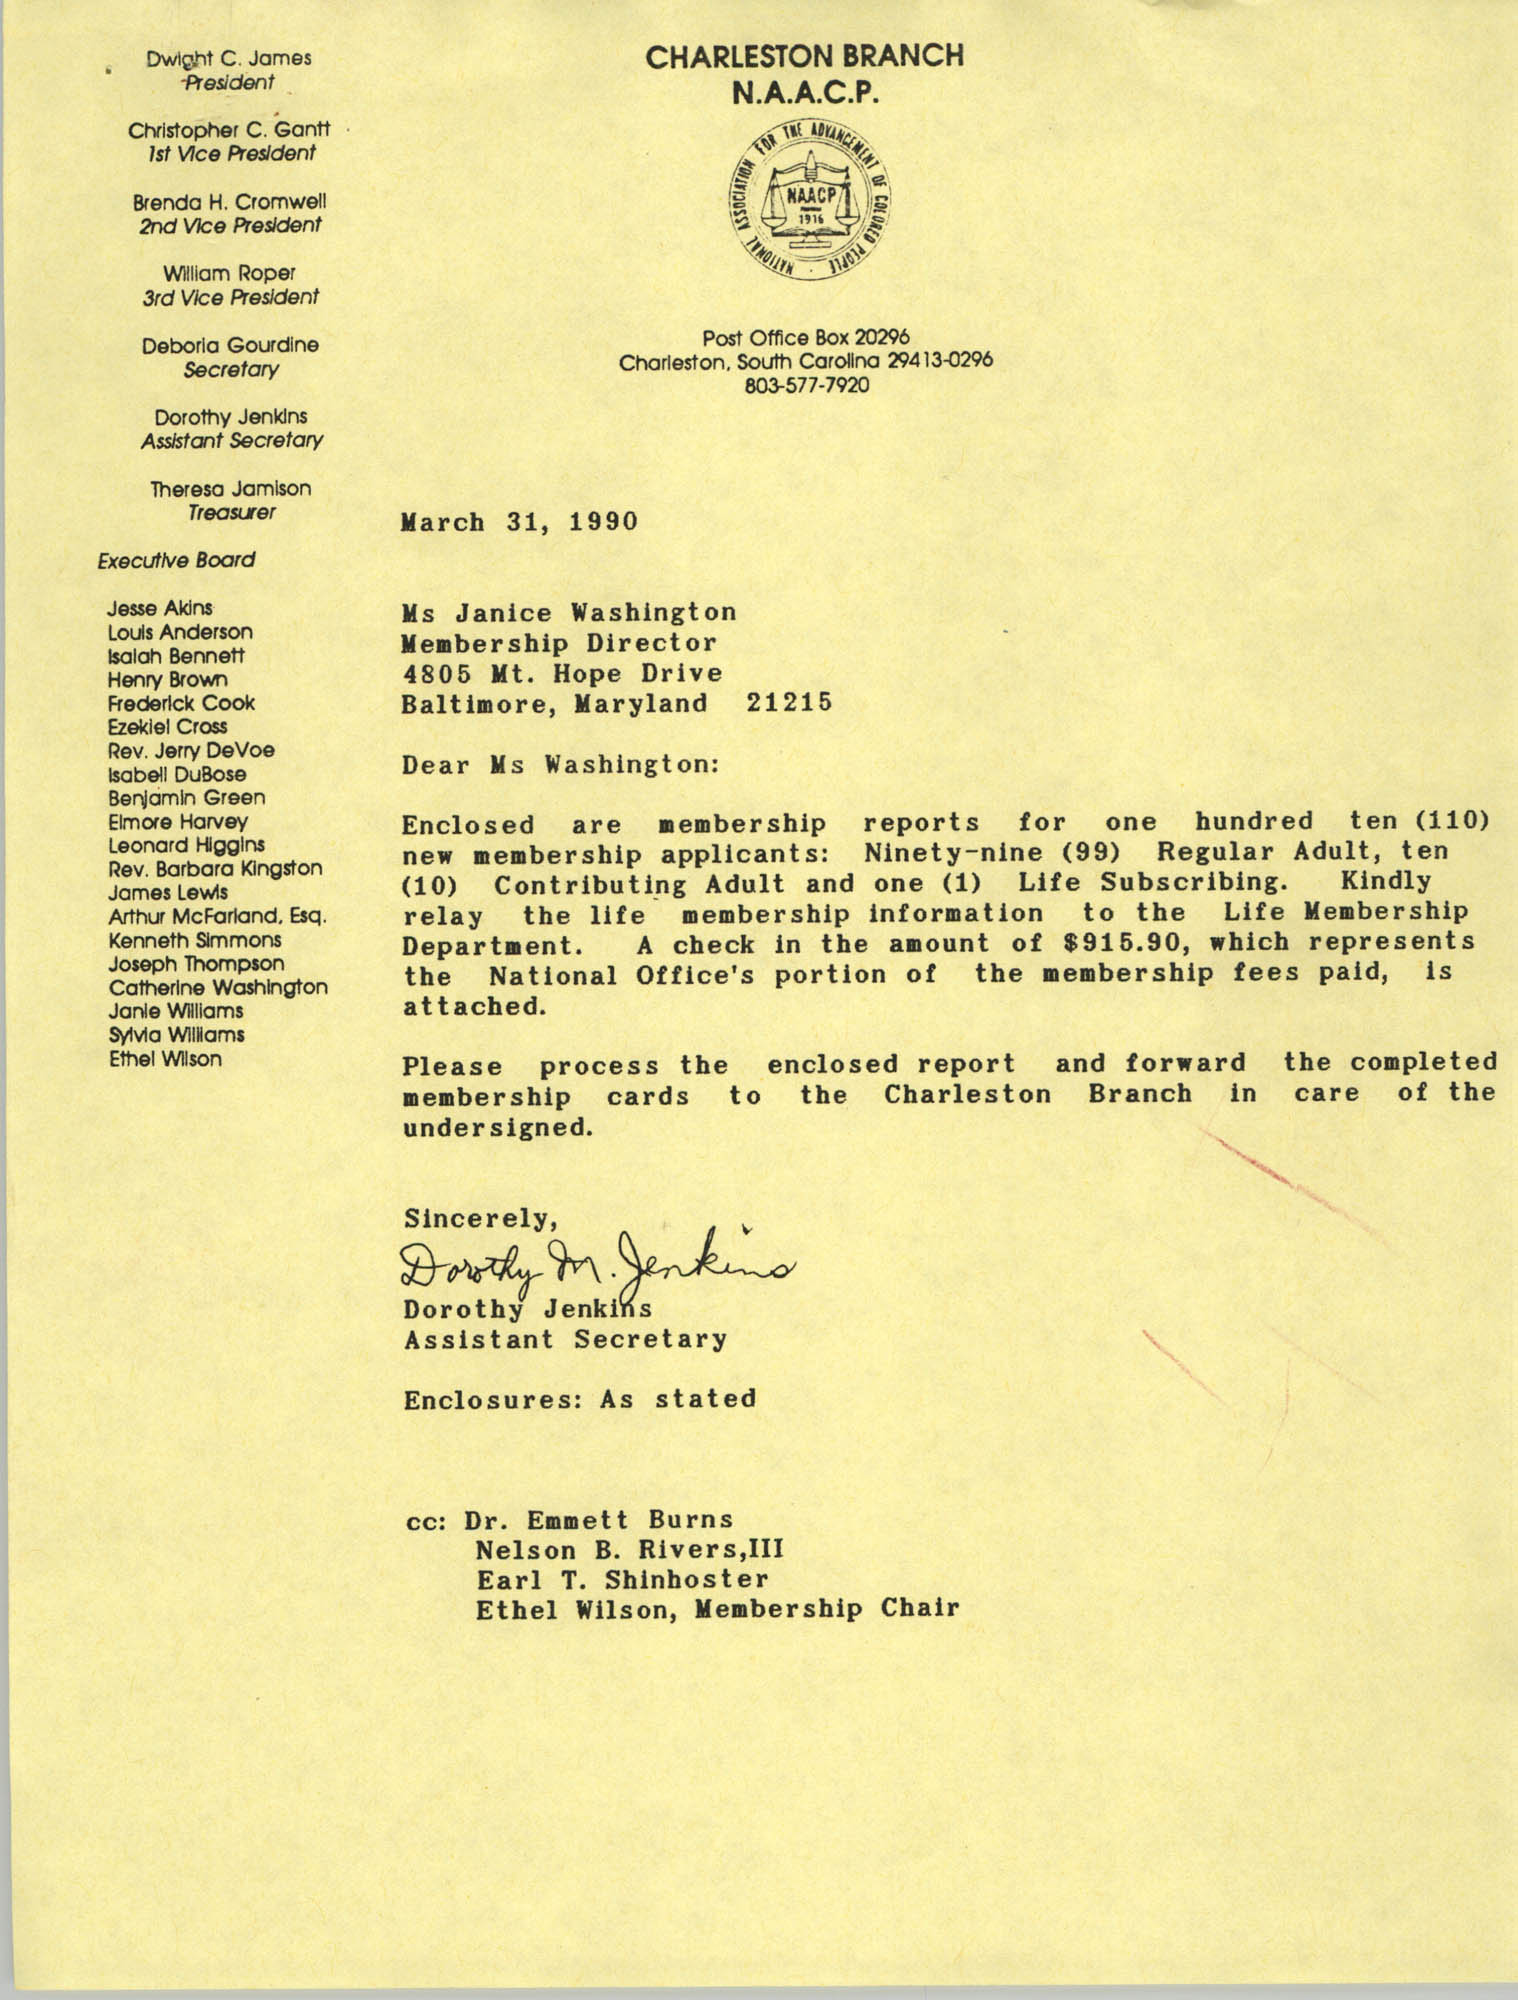 Letter from Dorothy Jenkins to Janice Washington, NAACP, March 31, 1990